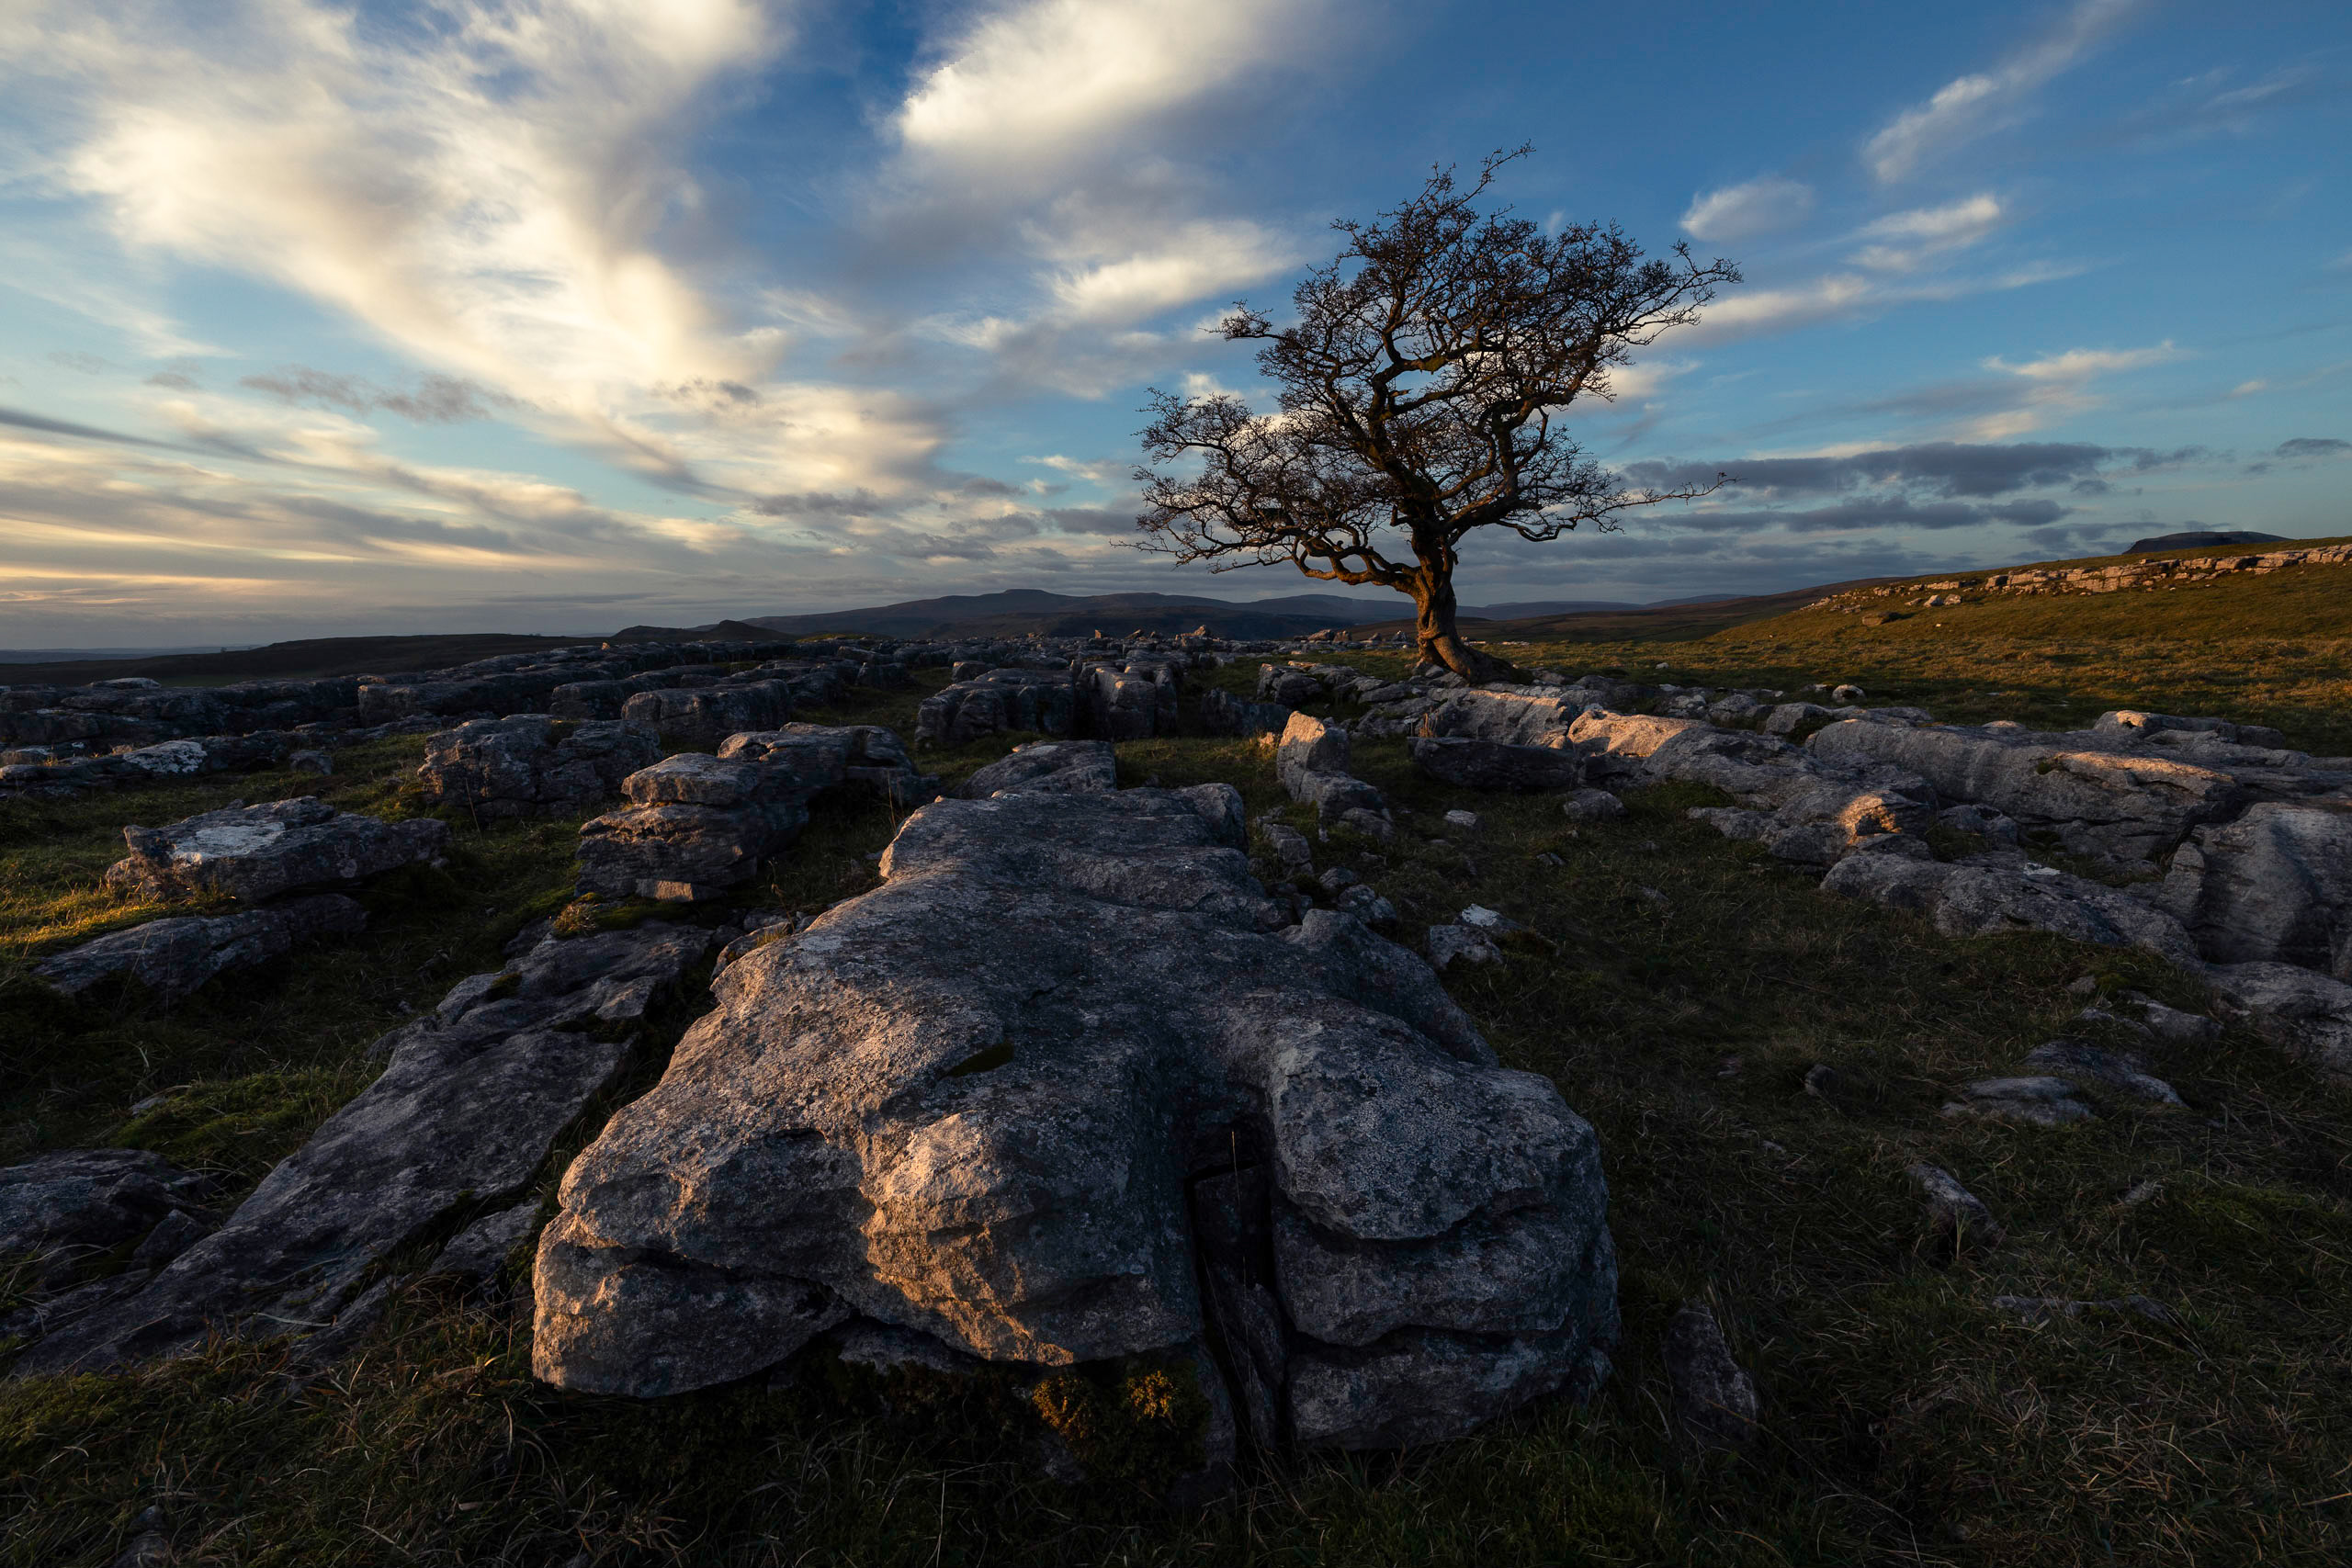 Limestone pavement and a hawthorn tree in front of Ingleborough in the Yorkshire Dales - a typical view on a guided walk